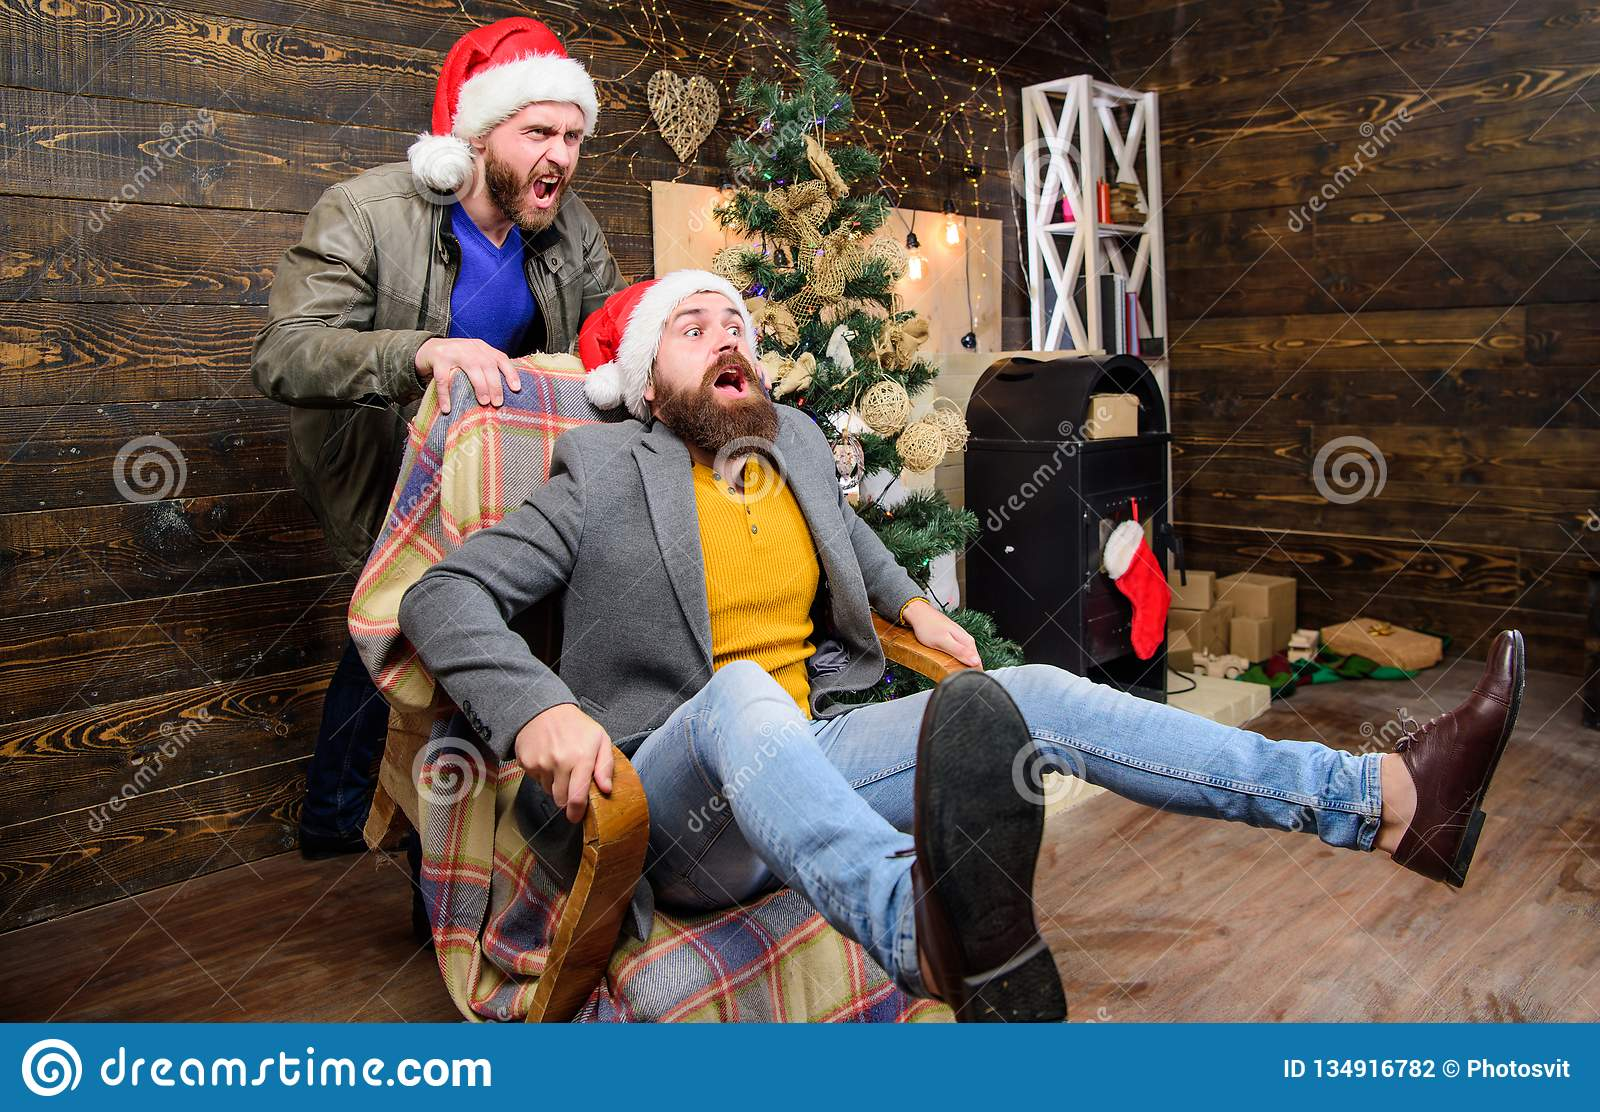 Man push armchair with friend. Cheerful men having fun at home. Christmas fun. You will never be bored if you have such